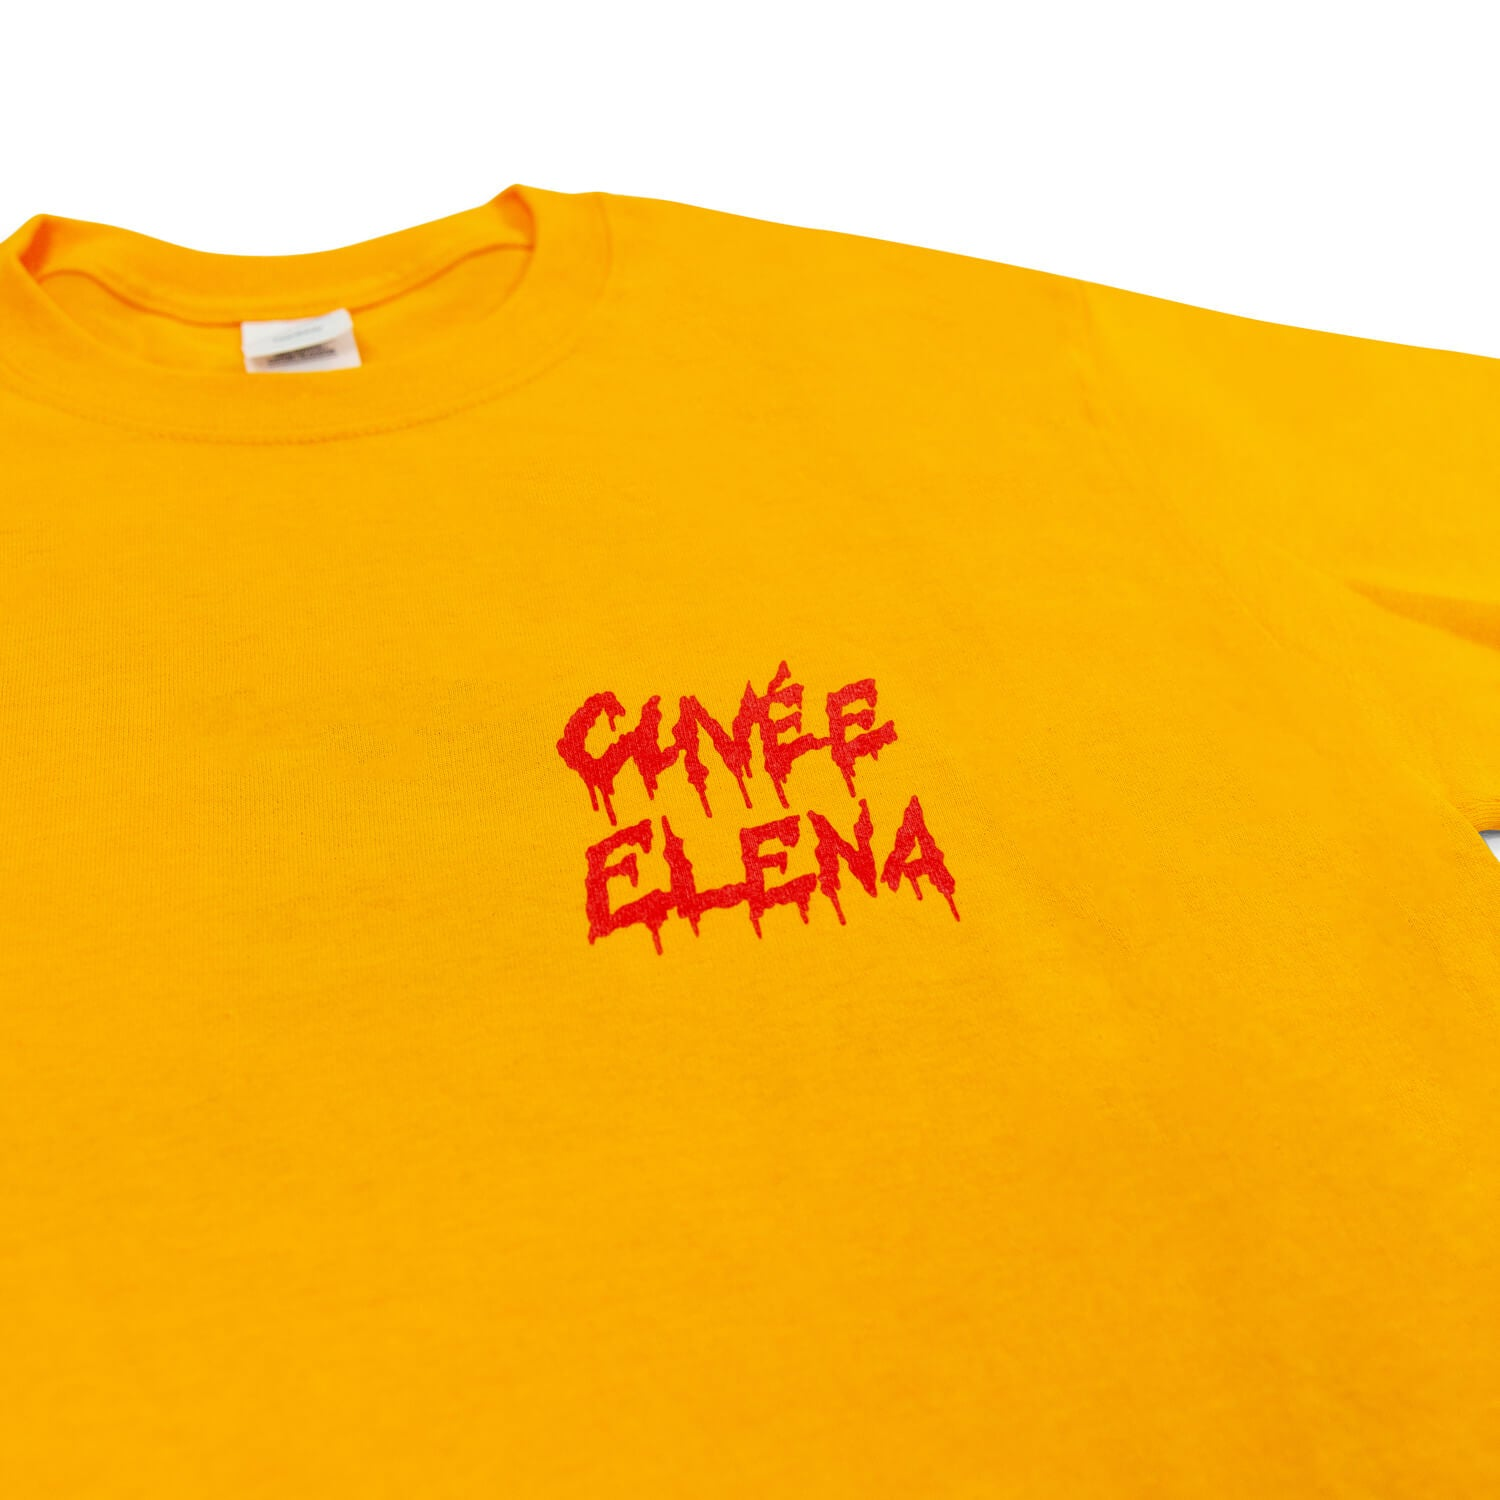 Elena Chingon T-Shirt